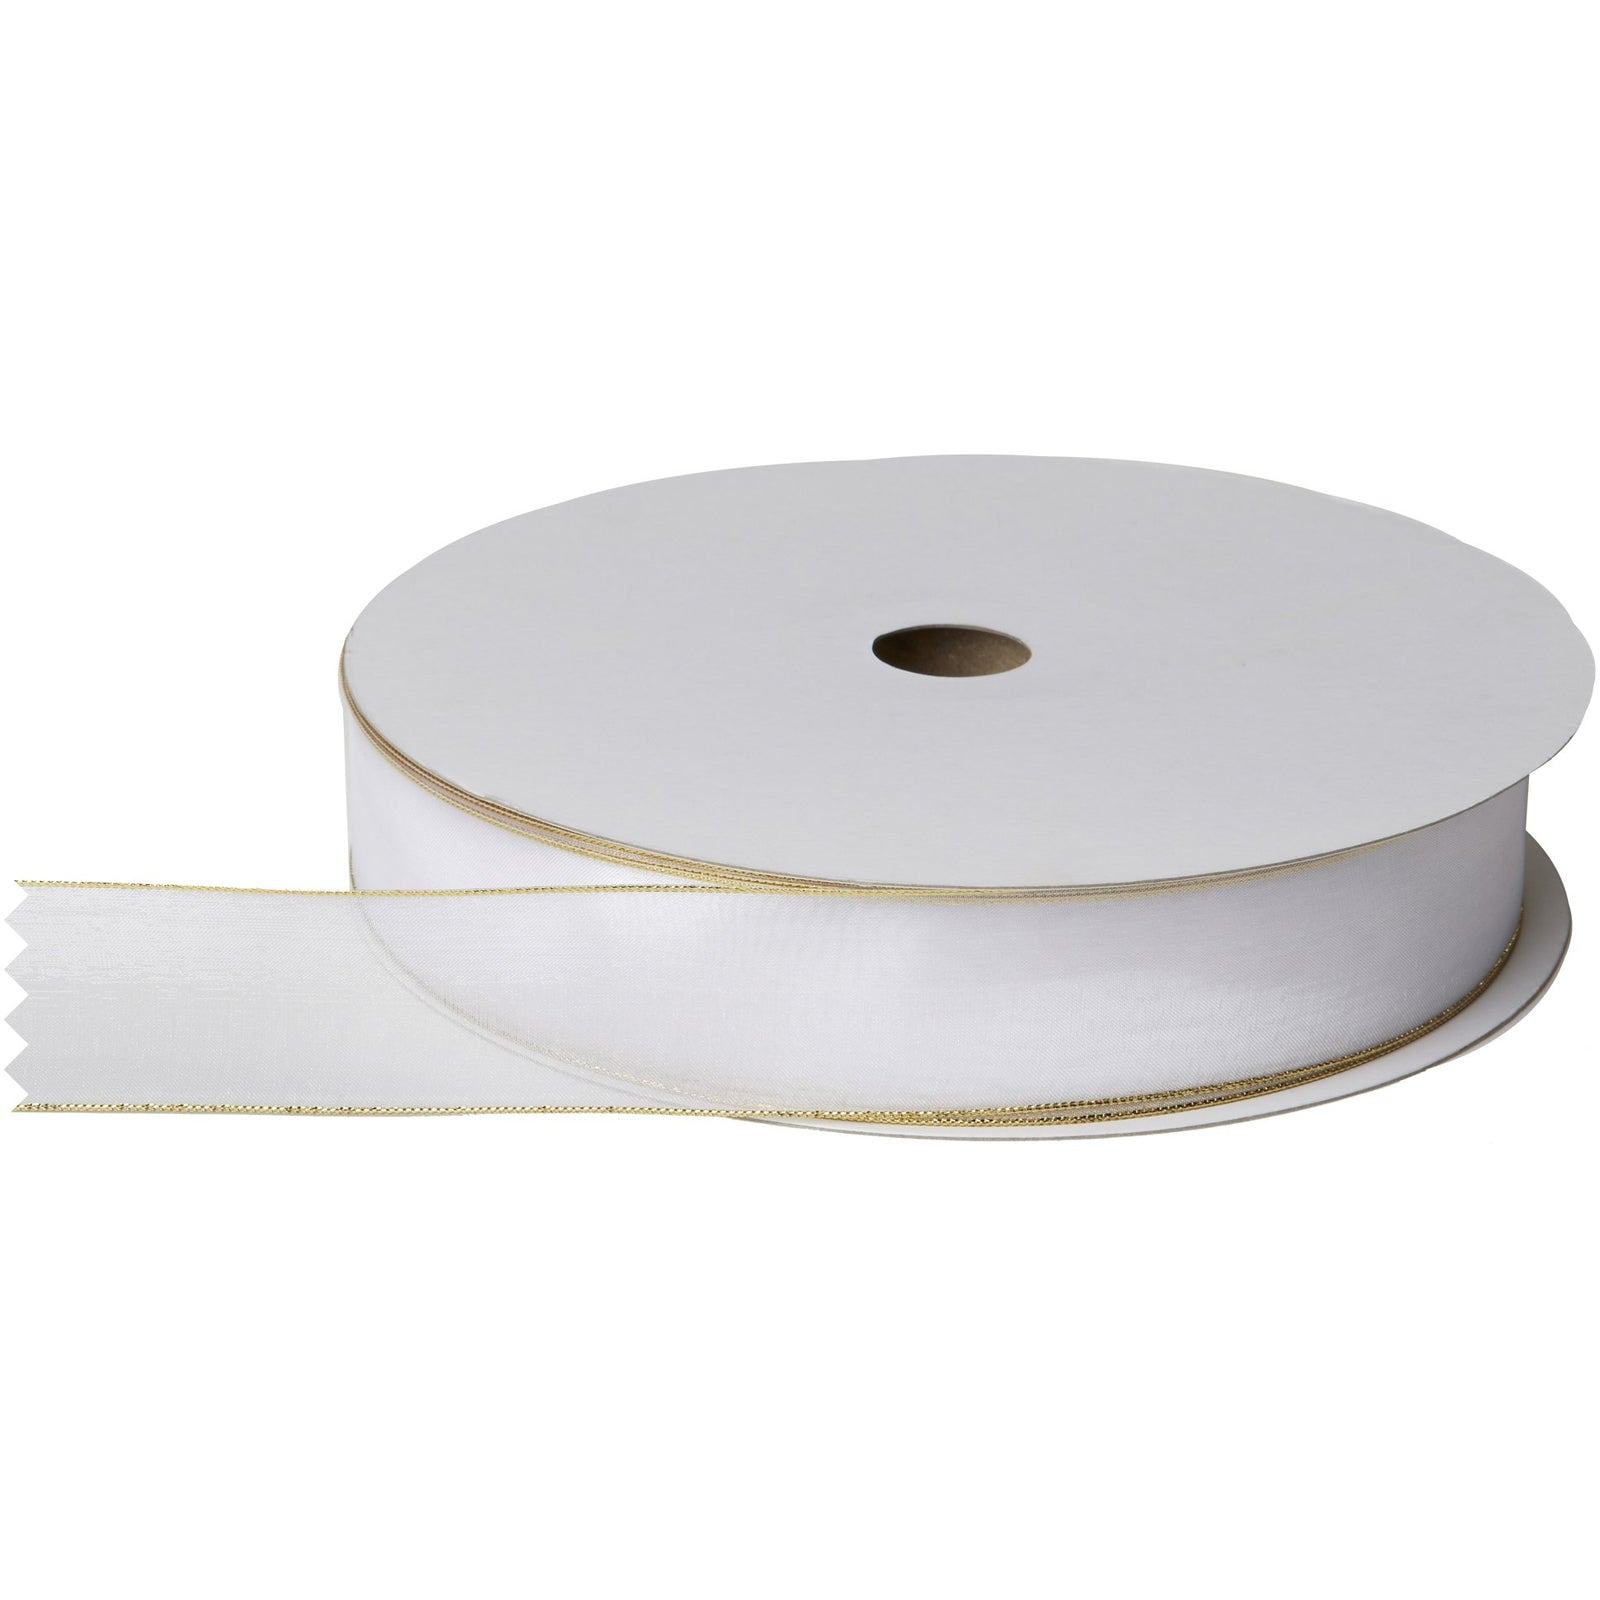 "Jillson & Roberts Organdy Sheer Wired Metallic Edge Ribbon, 1 3/8"" Wide x 100 Yards, White/Gold"